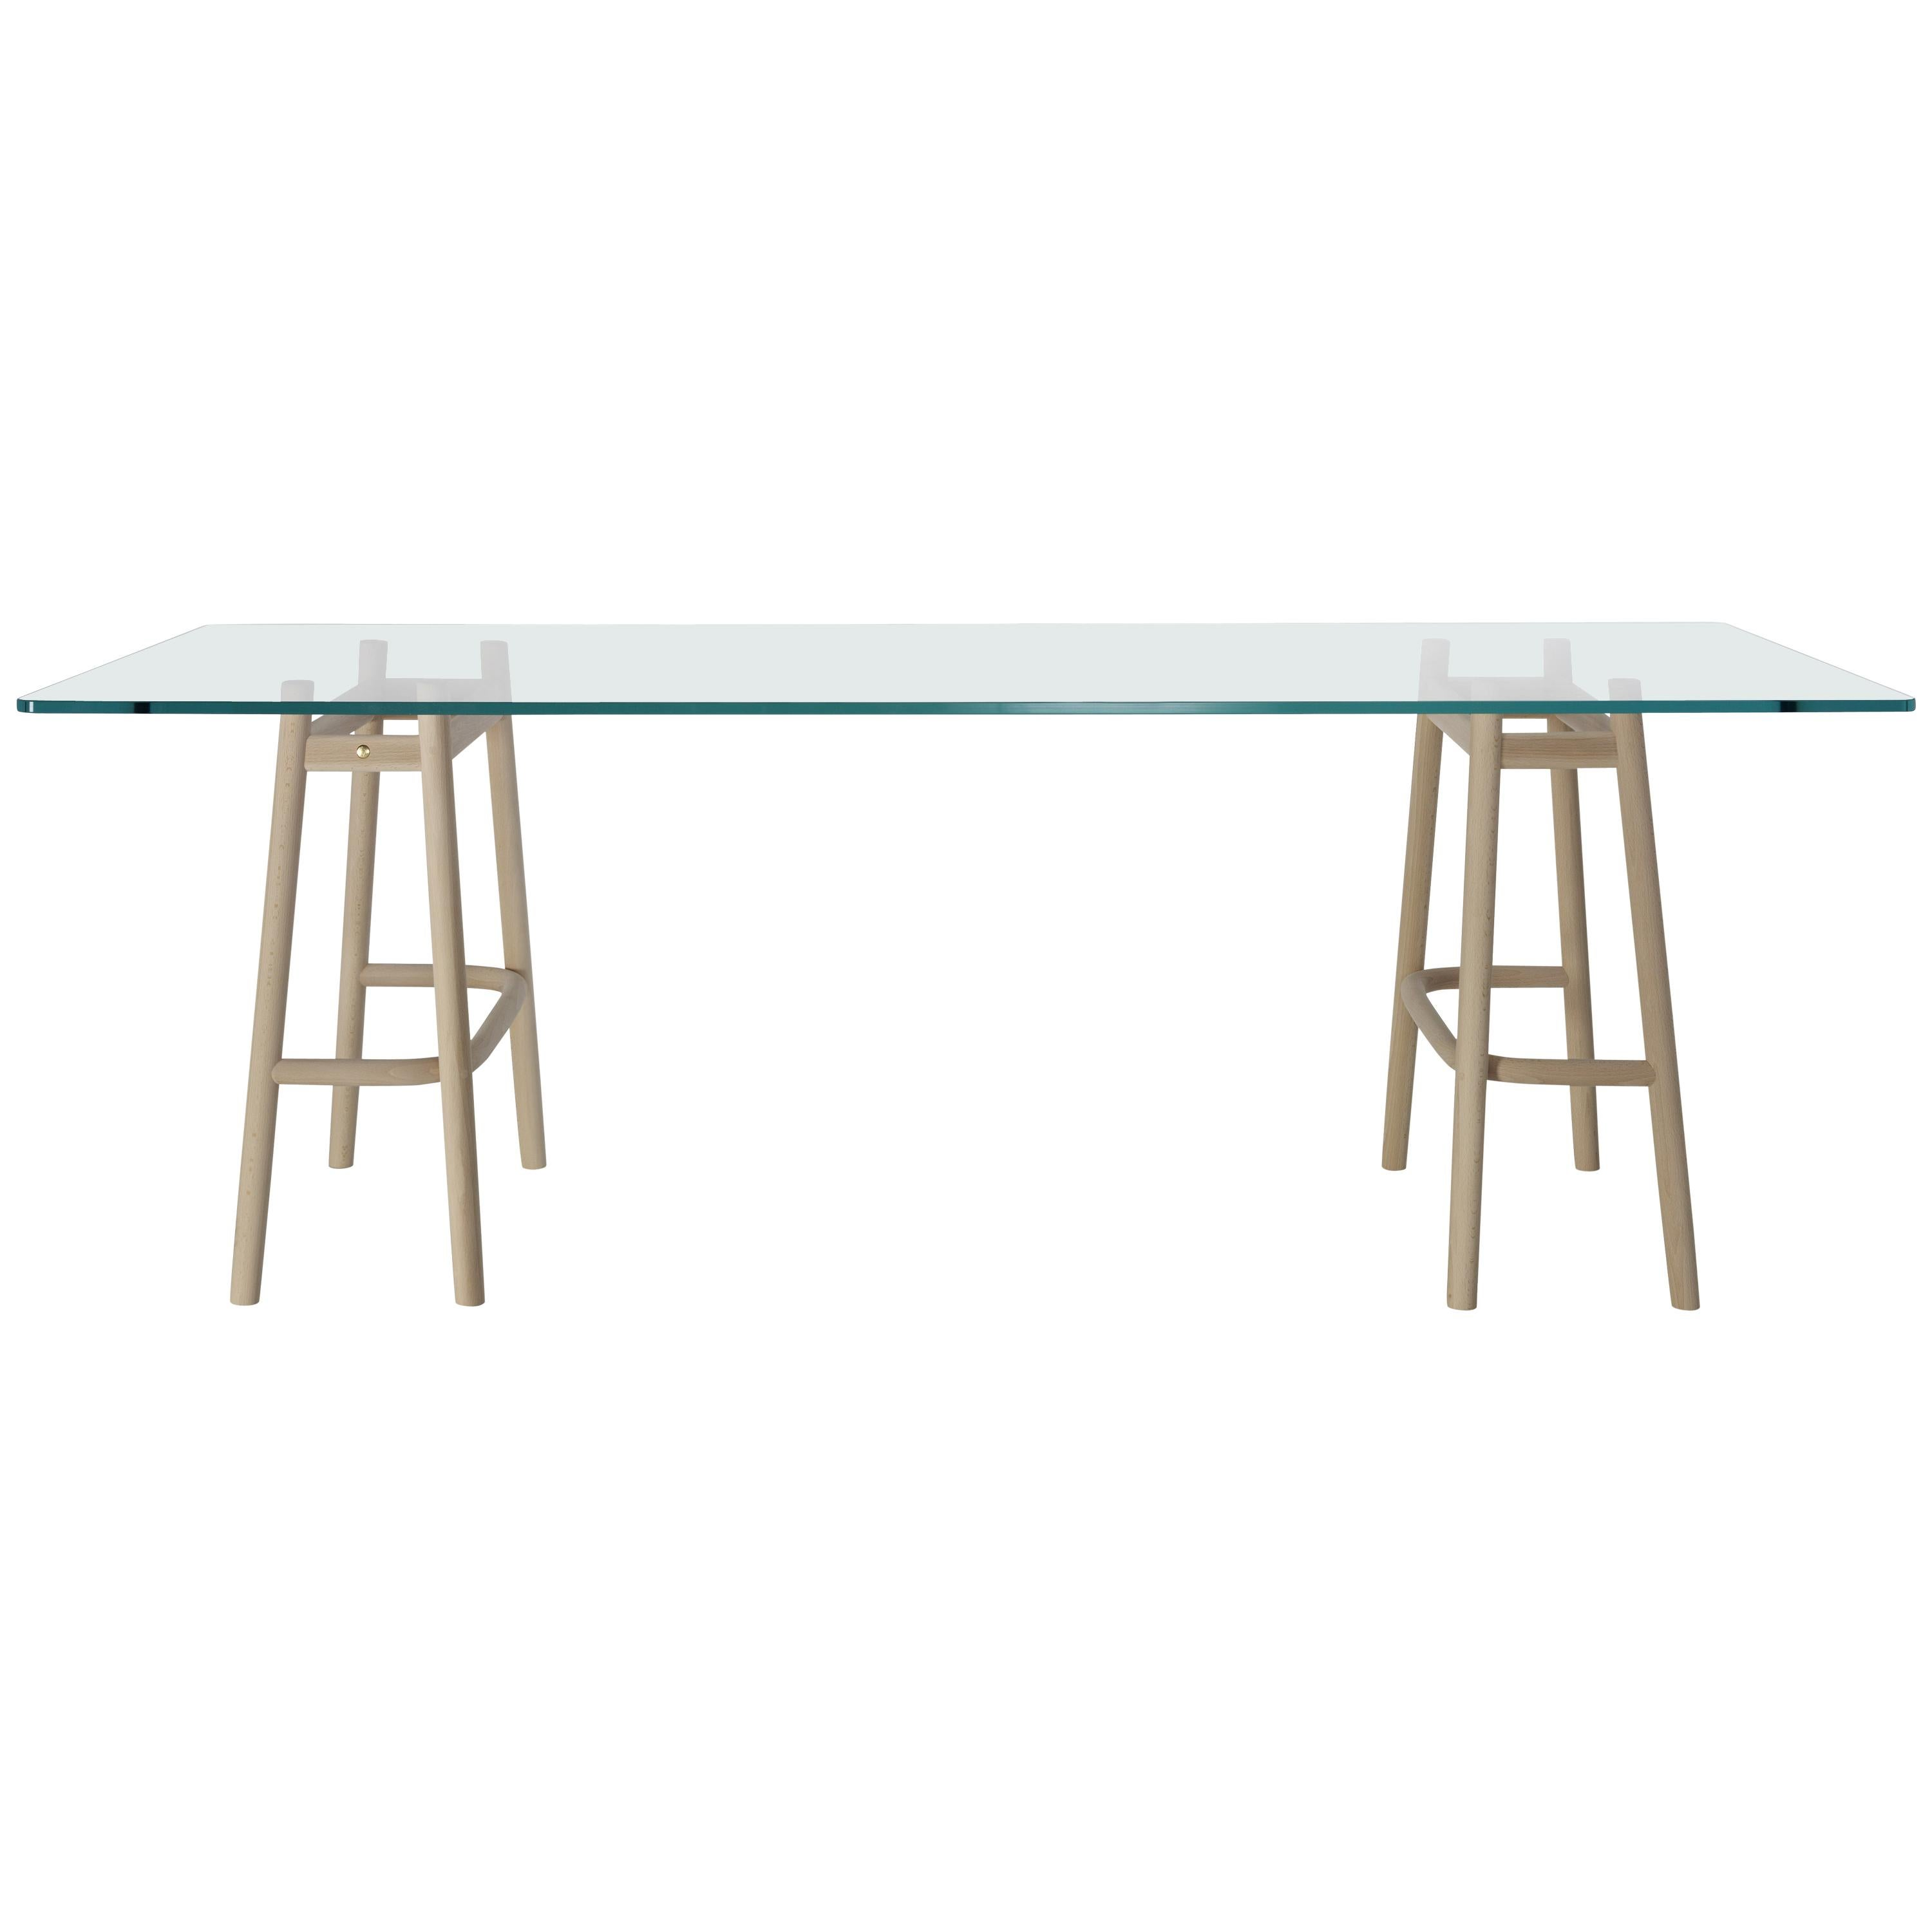 Gebrüder Thonet Vienna GmbH Single Curve Dining Table in Beech with Glass Top